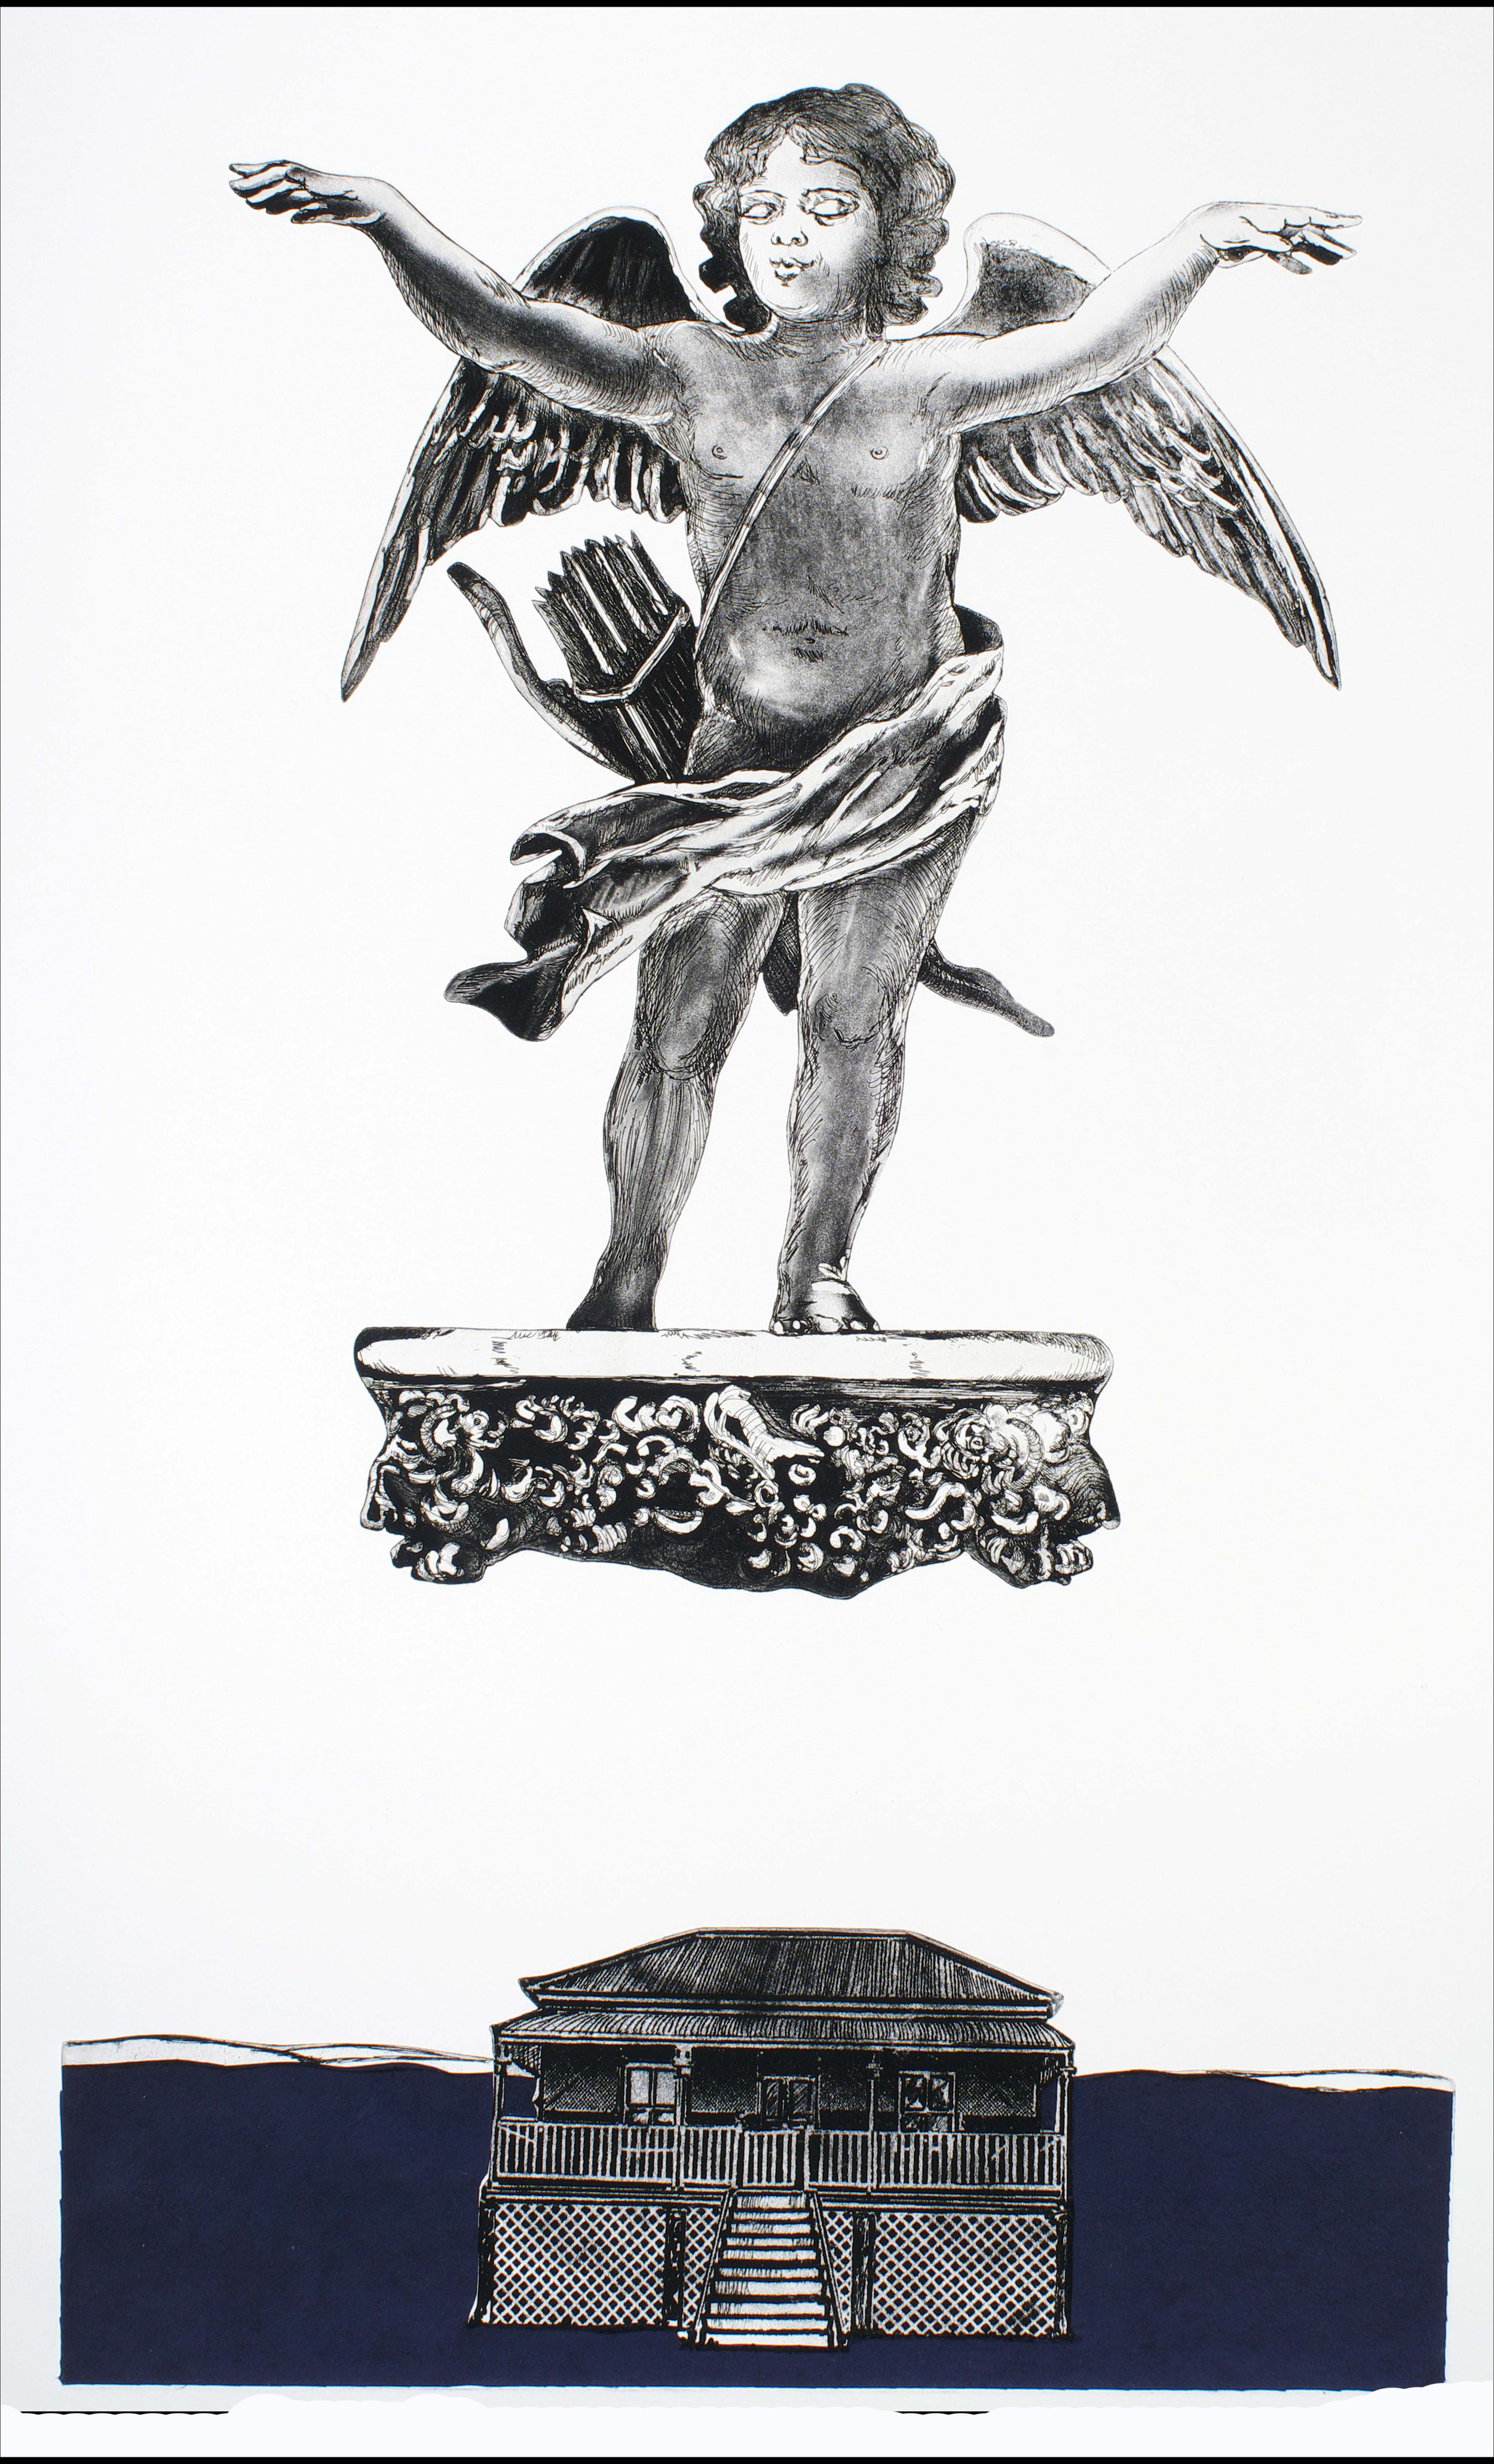 Cupid Over Queenslander II   etching, aquatint and chine collé (shaped plates) on rag paper. 840 x 490 mm. Artist's Proof, one of two proofs, not editioned.